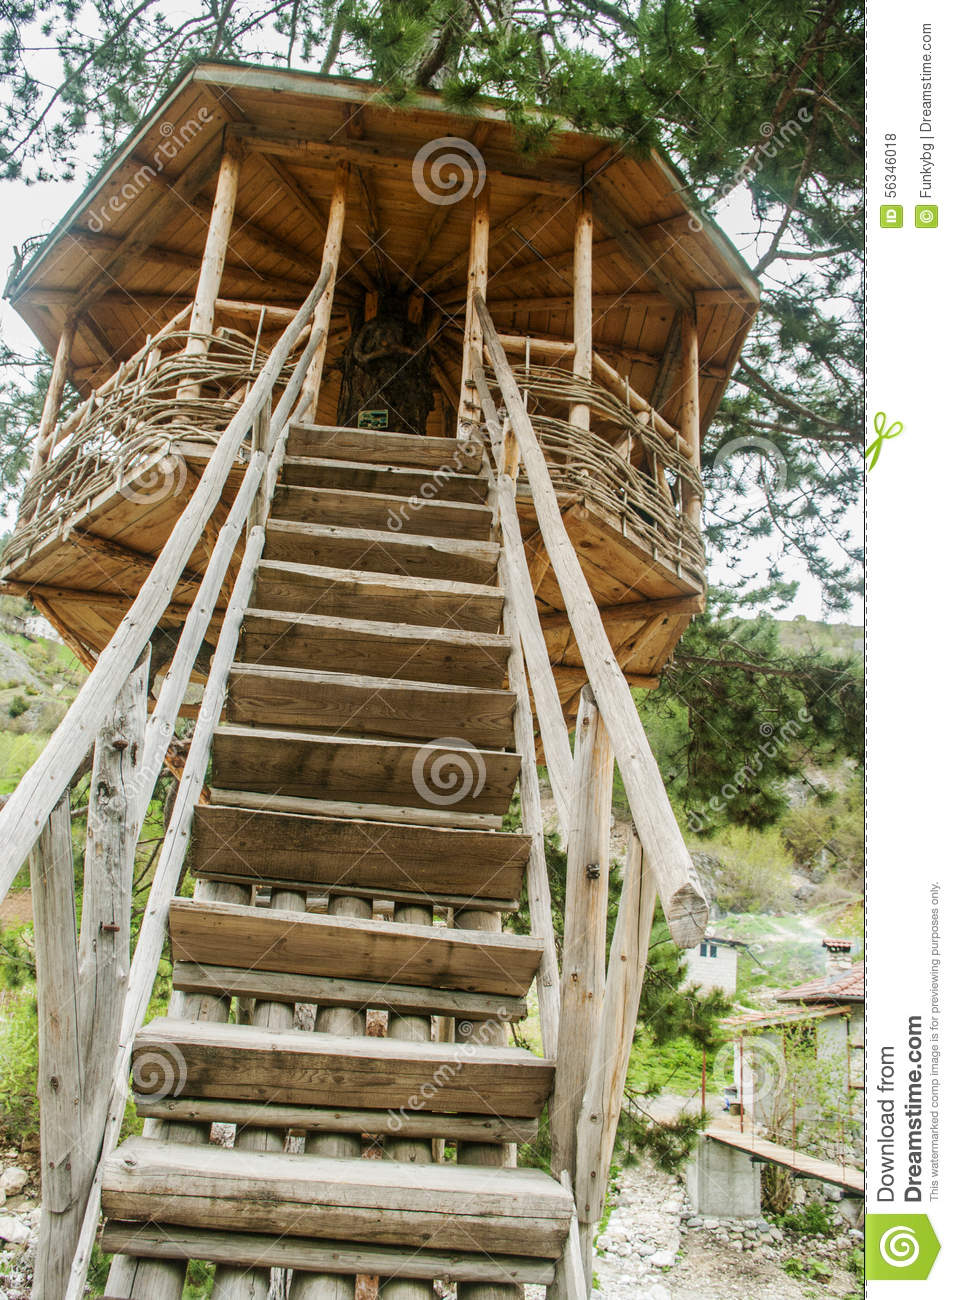 Cute small tree house stock photo image 56346018 for Small tree house